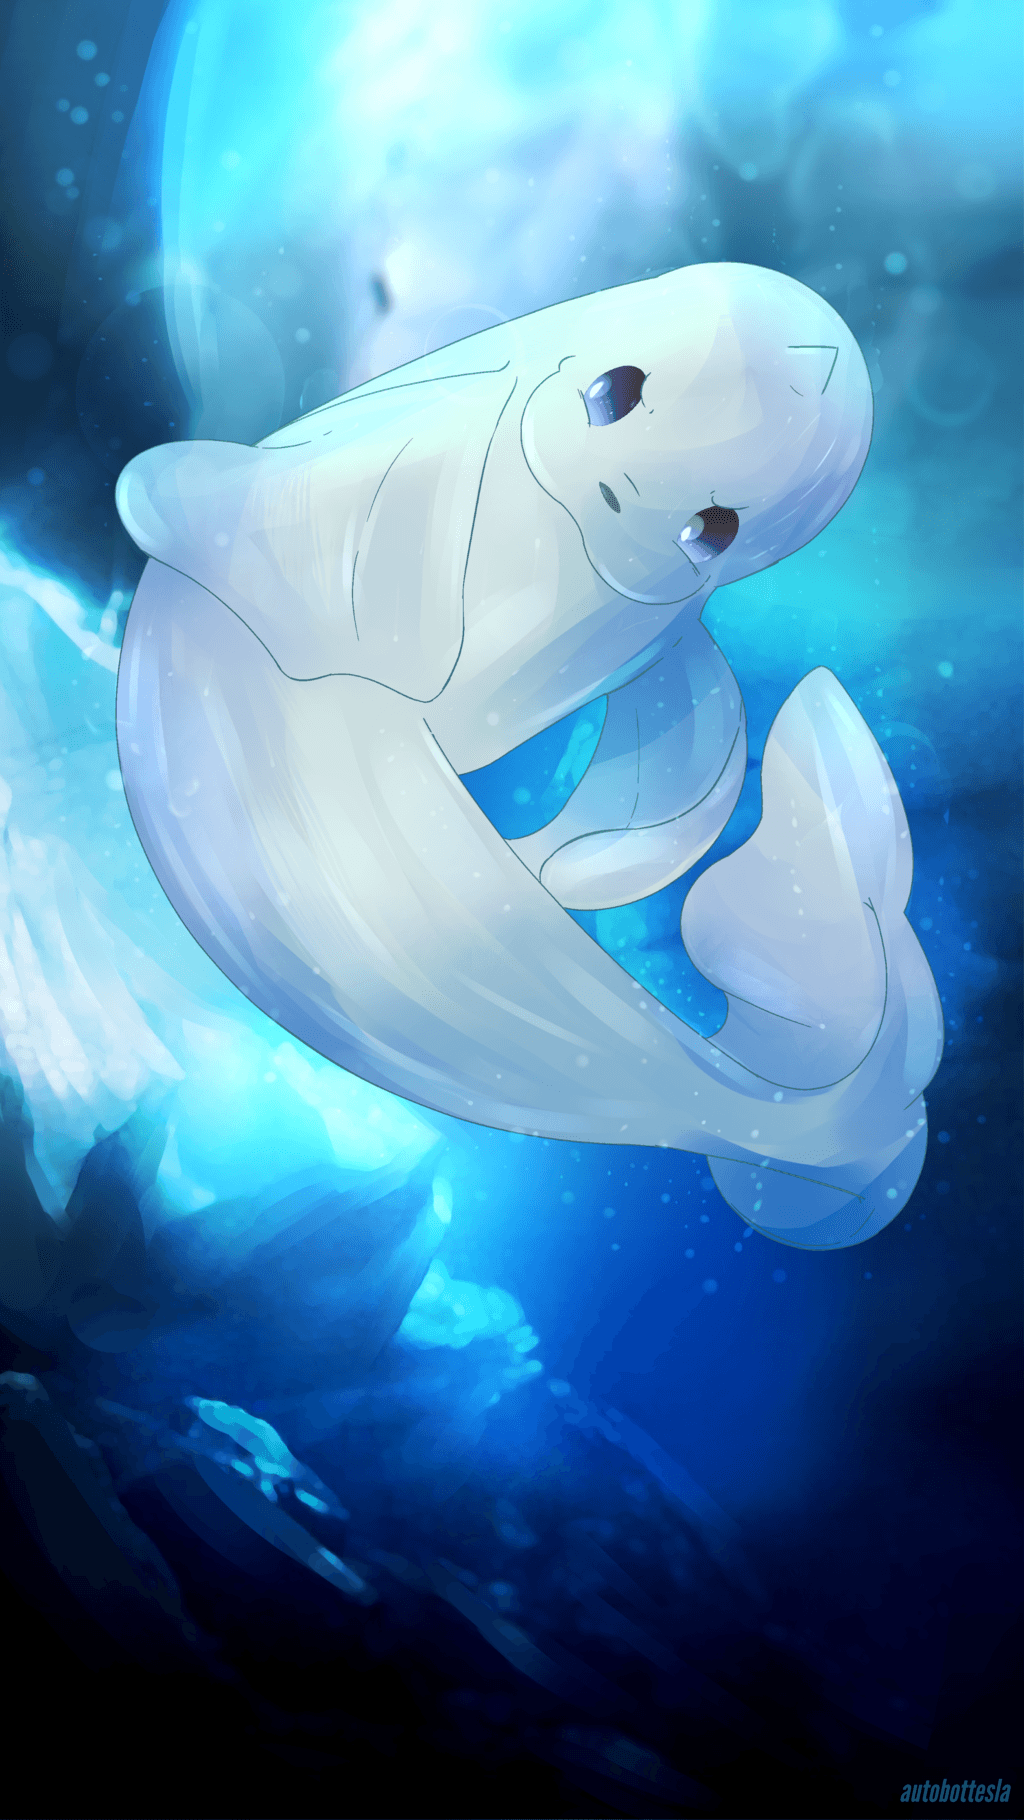 Day 372 - Jugon | Dewgong by AutobotTesla on DeviantArt